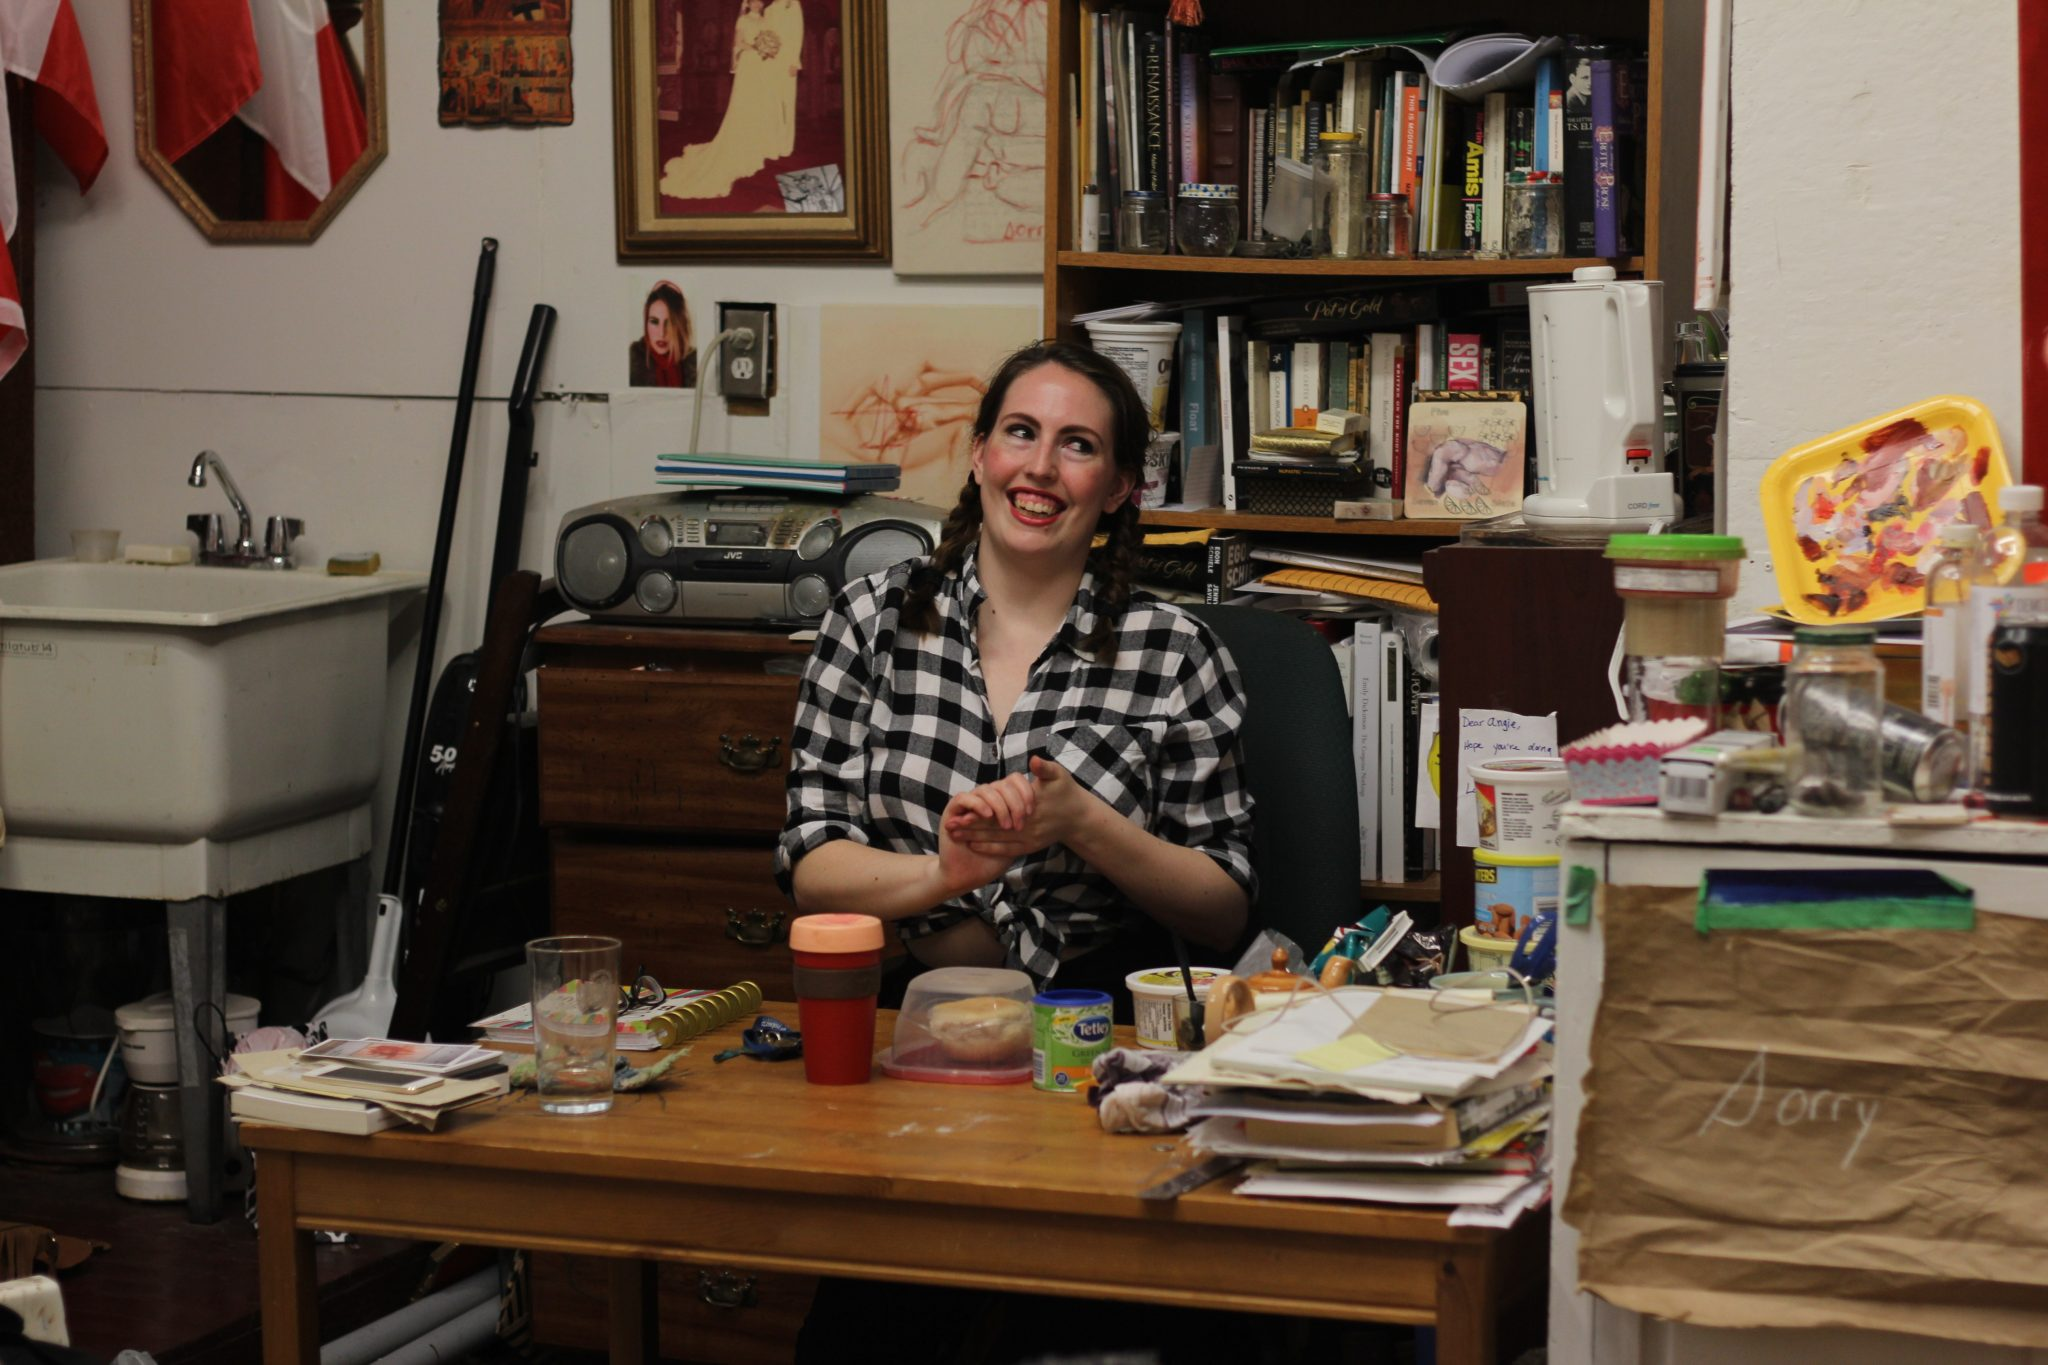 angie quick (artist) sits in her studio